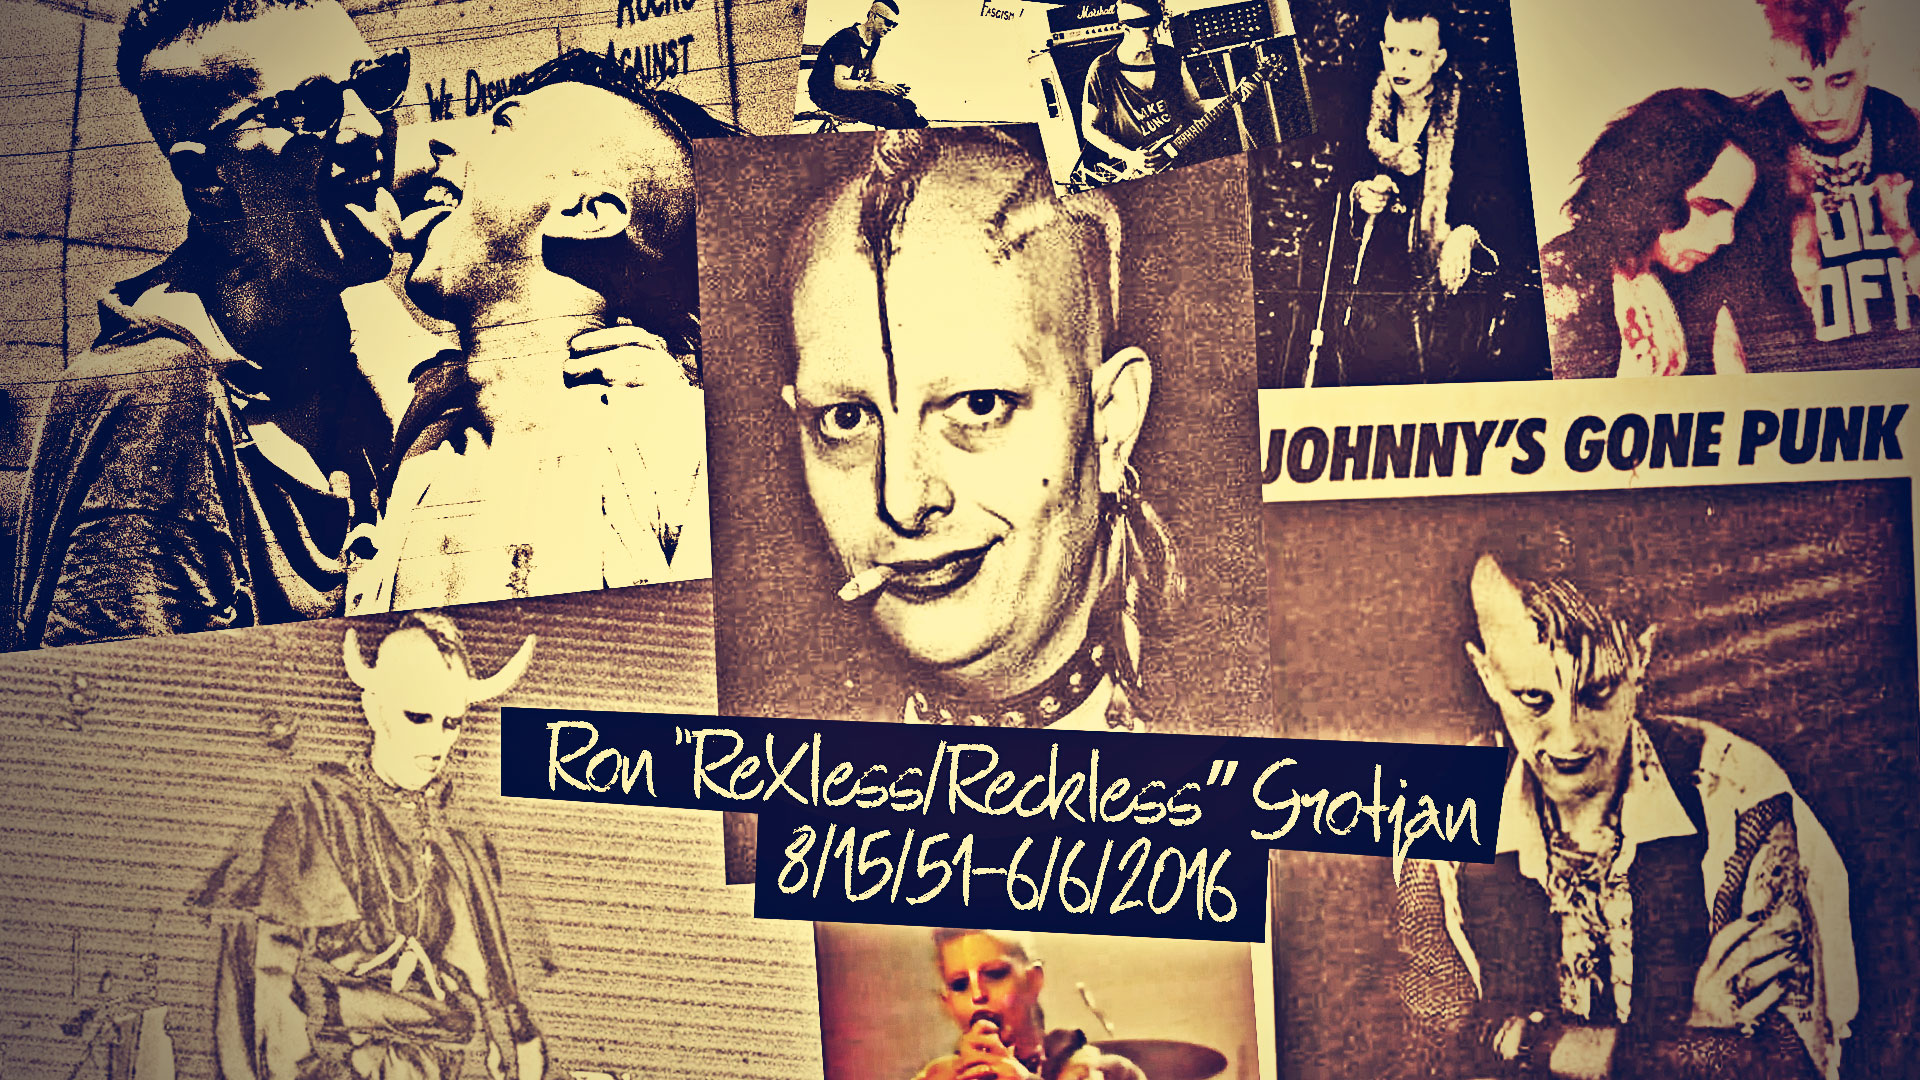 Ron 'ReXless/Reckless' Grotjan 8/15/51-6/6/2016